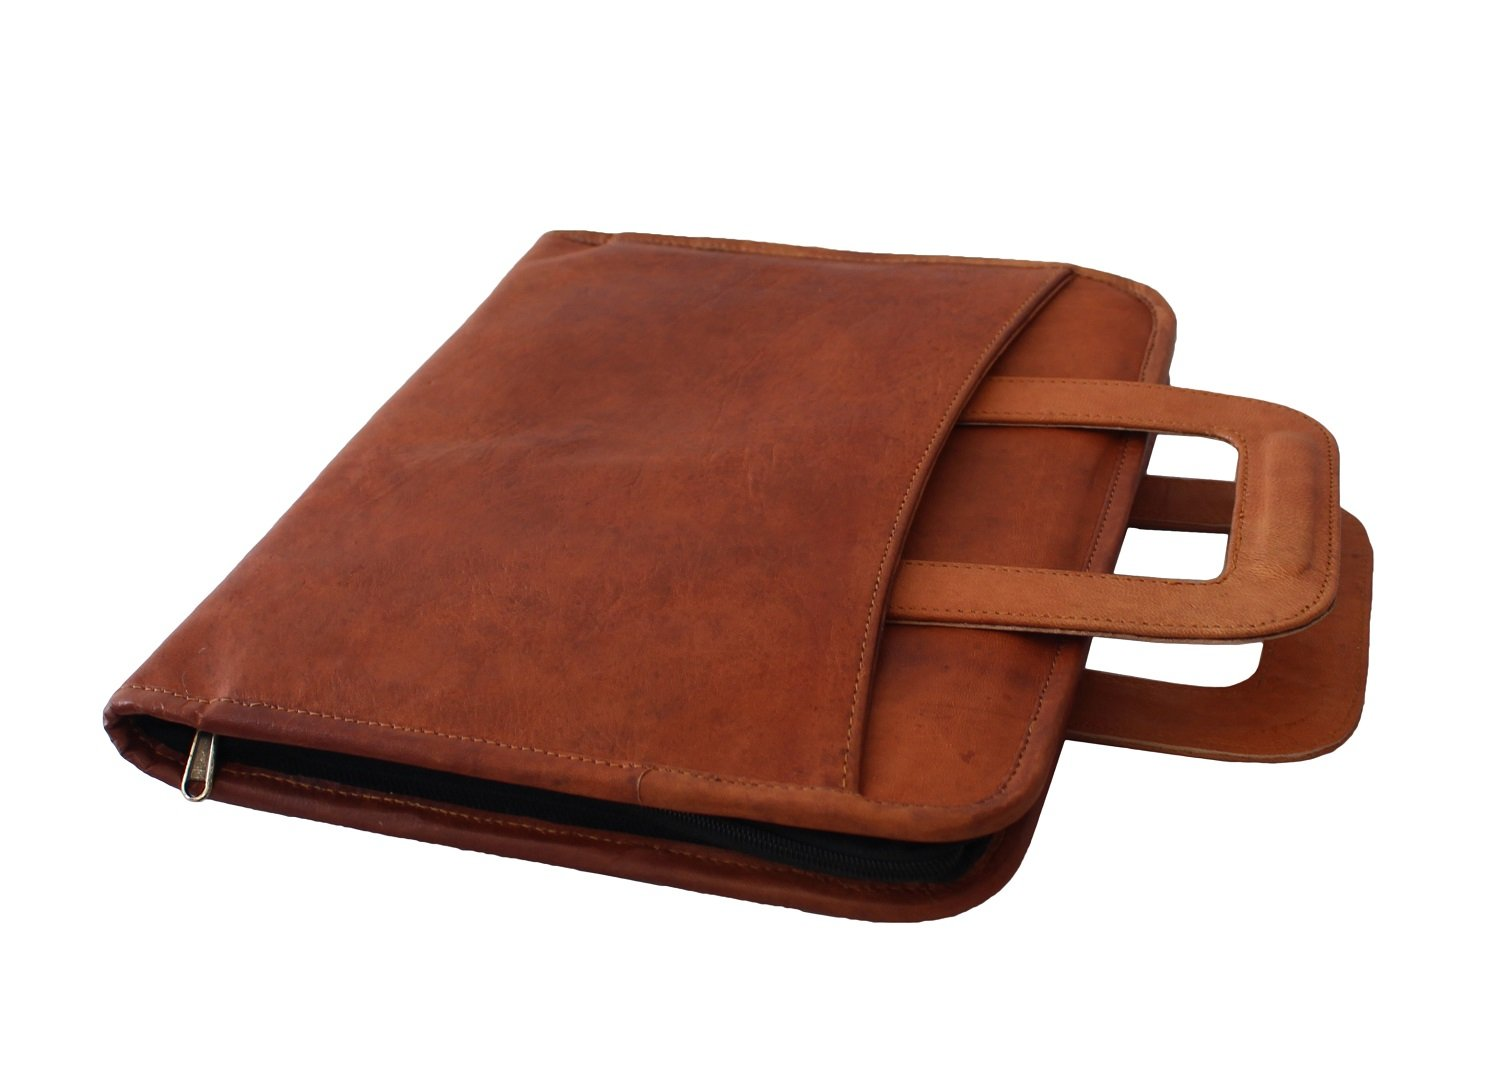 LUST Leather Business Portfolio, Hidden Briefcase Handle leather folder, Leather Padfolio, Zippered close personal organizer (Brown) Krishnaa Crafts BH-FR1